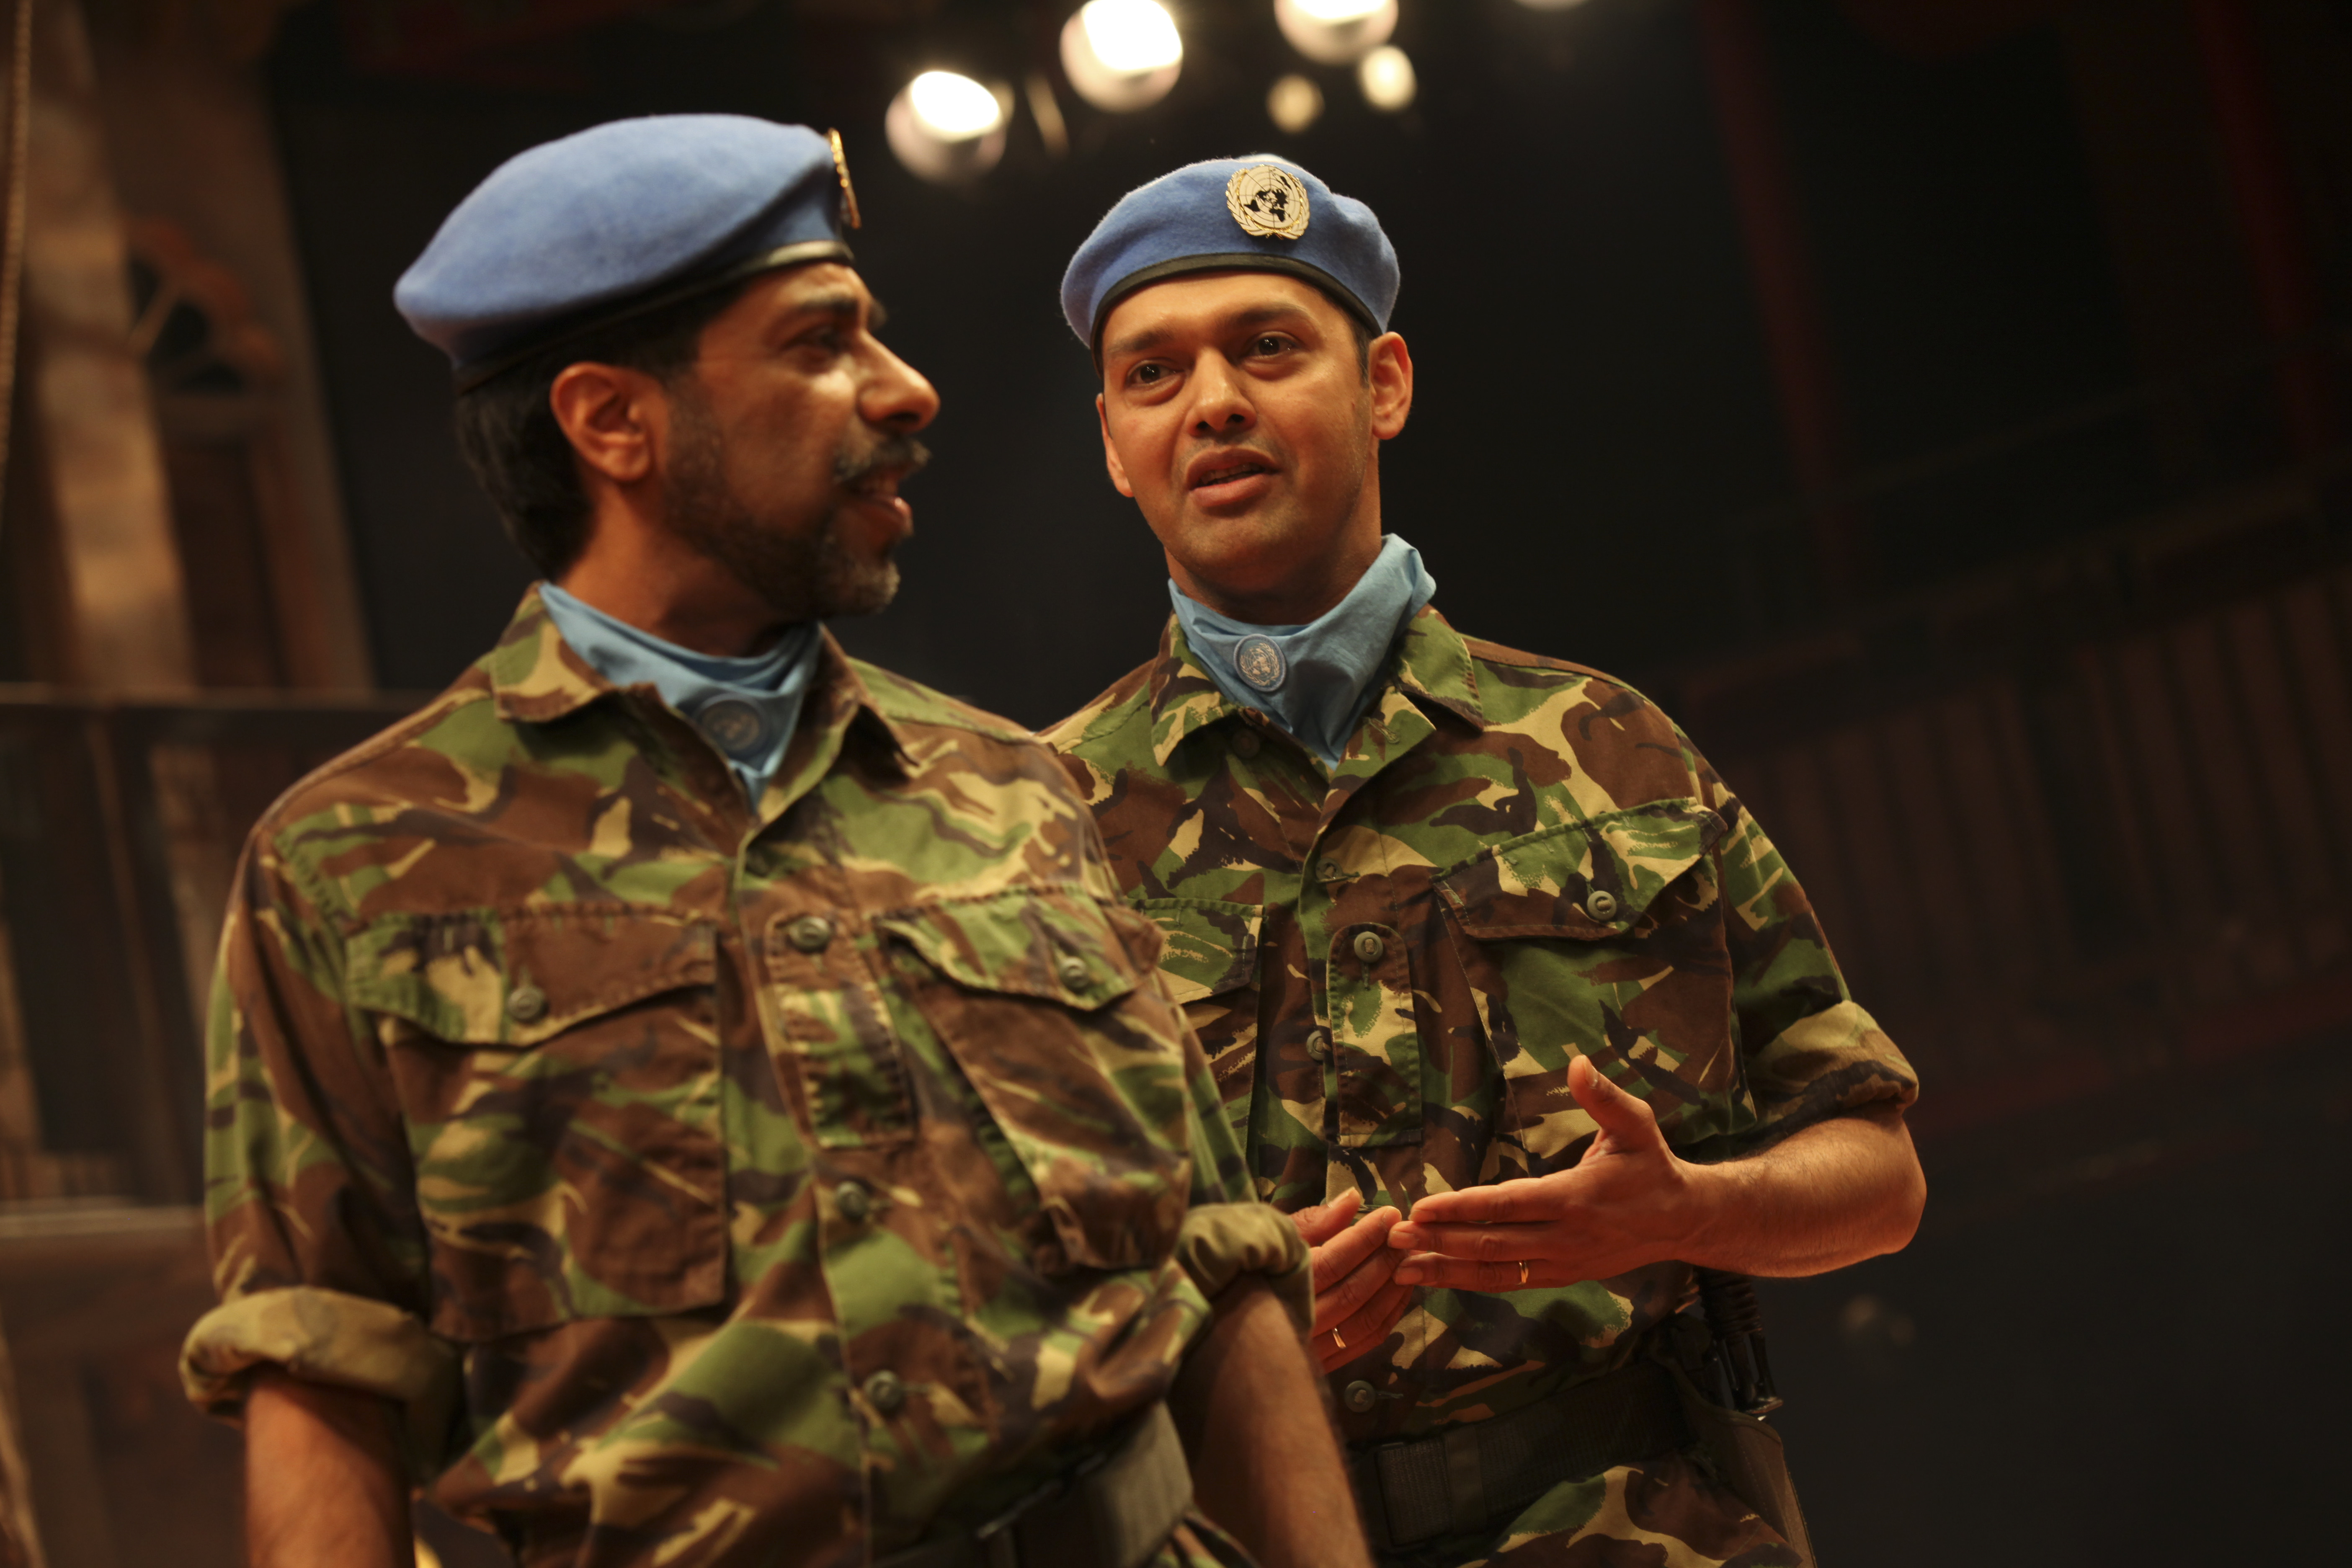 Two men in army fatigues and blue berets.